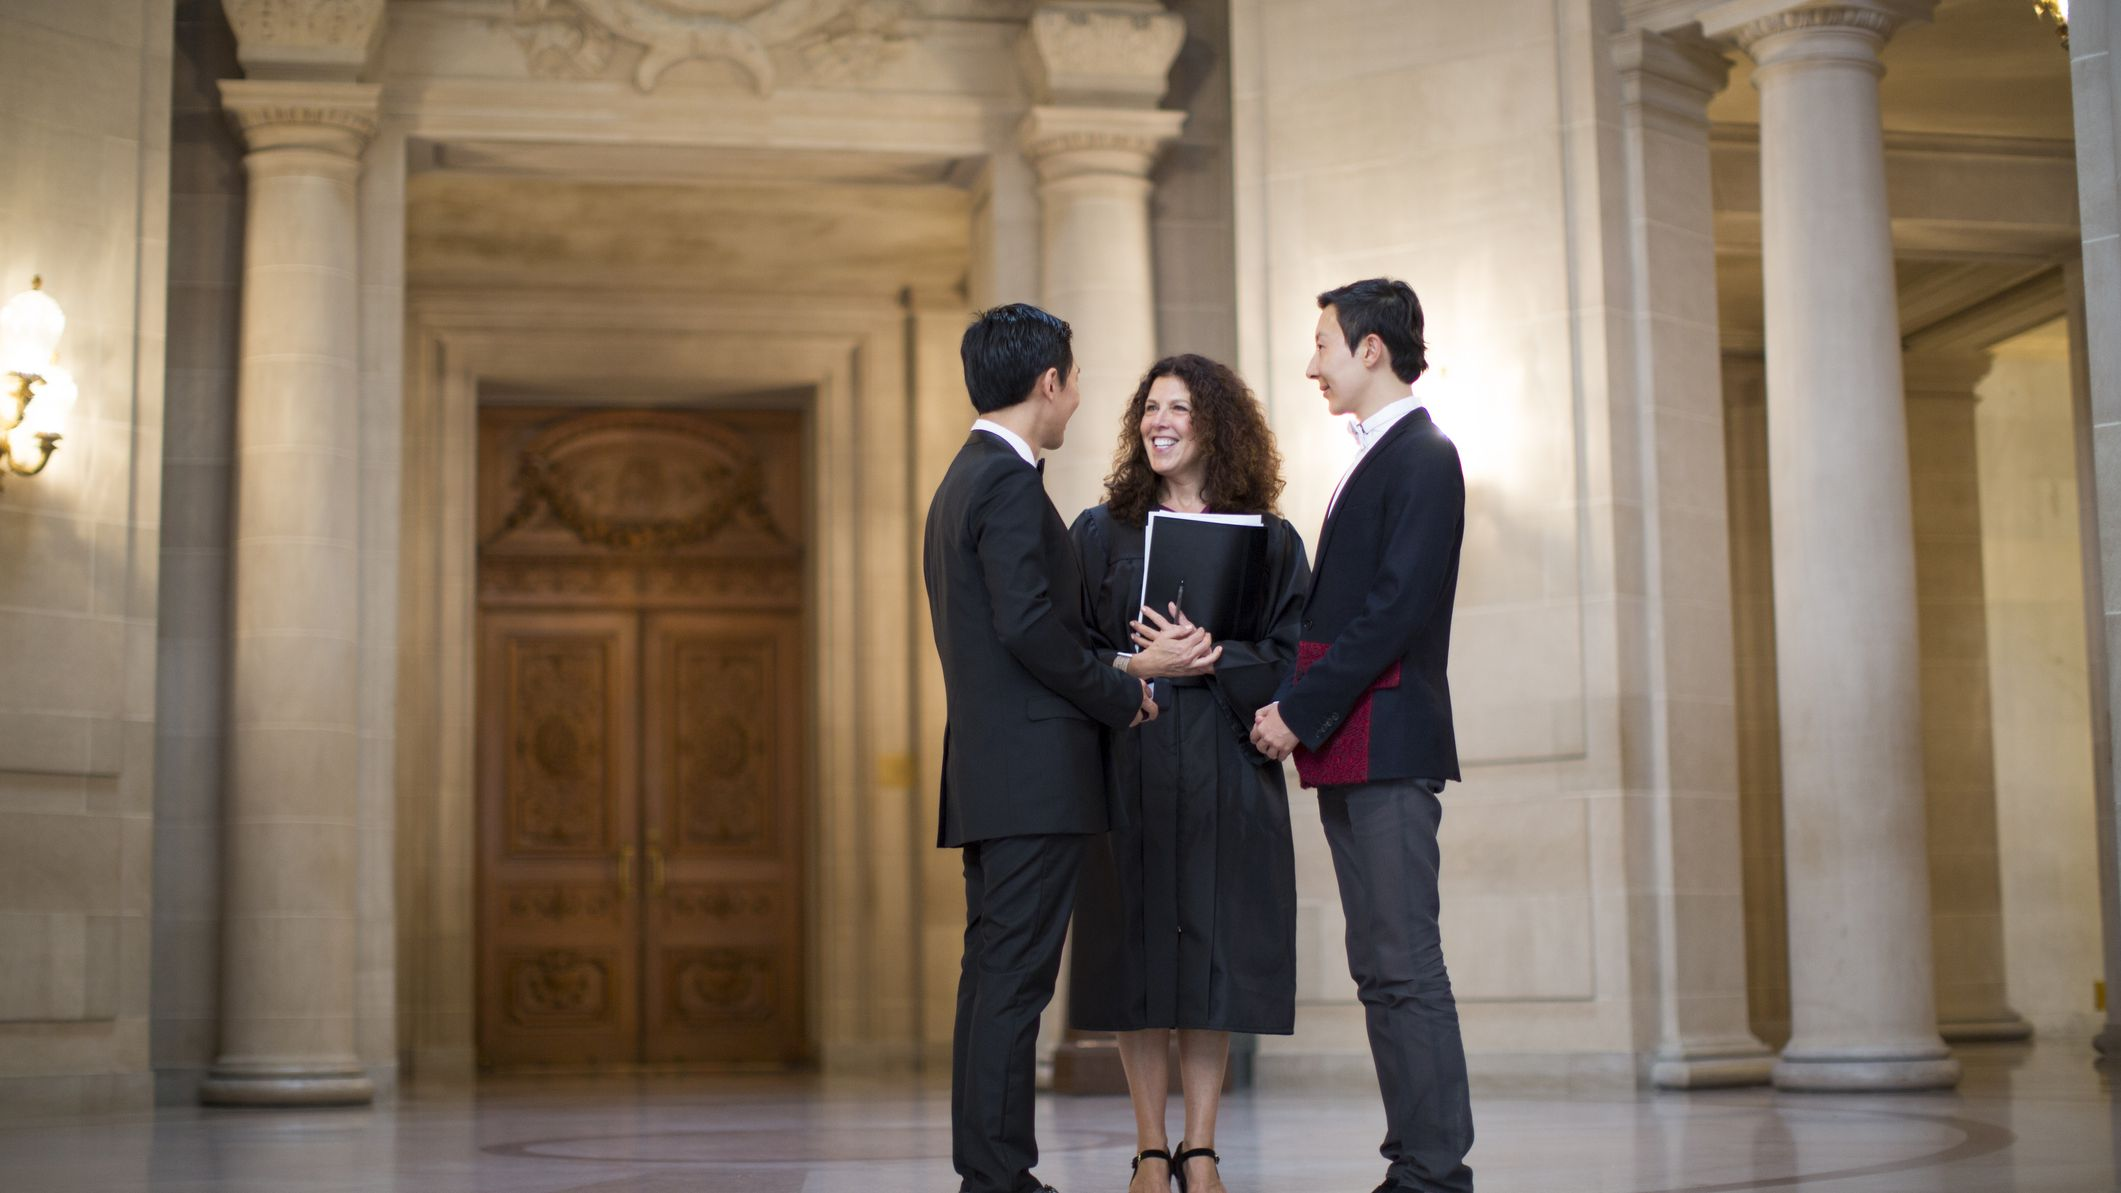 The Definition And Description Of Civil Marriage